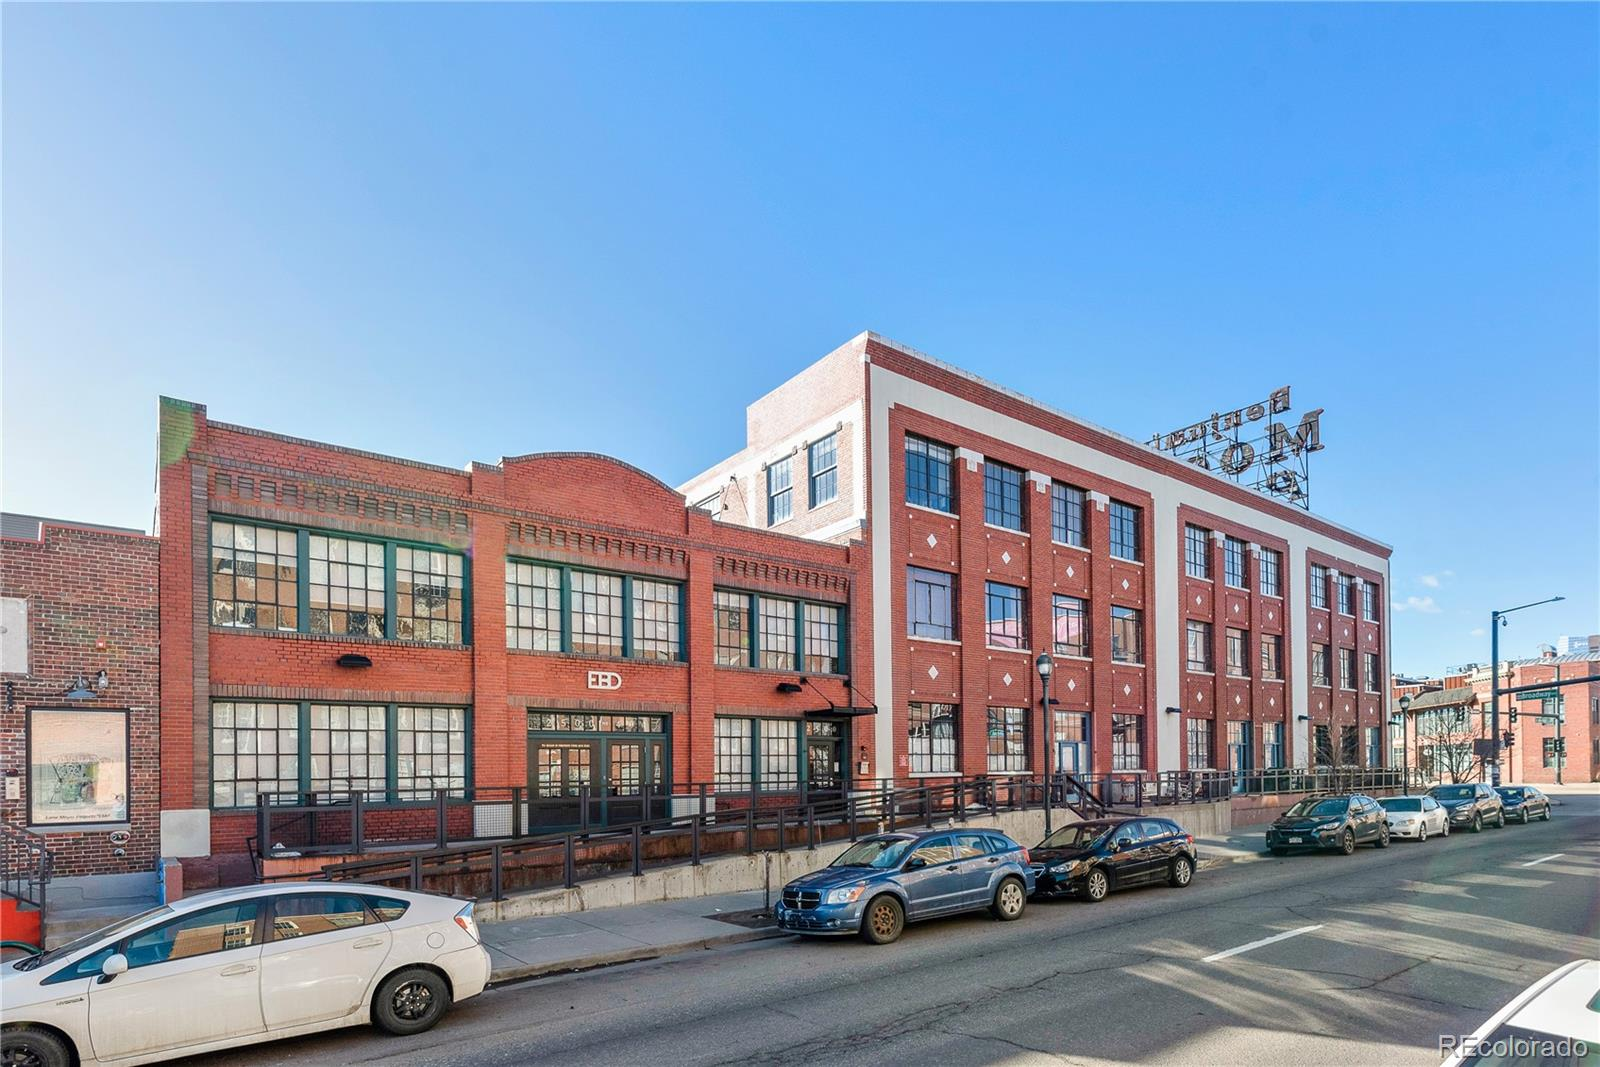 Are you looking for a historic brick loft full of character and light? How about secured parking with a reserved, covered space in River North (RiNo) - one of Denver's hottest neighborhoods? Wouldn't it be nice to have space not just for friends but two huge storage lockers for bikes, outdoor gear, and retro ski outfits too?! This isn't La-La Land, it's Unit 206 in the Historic Benjamin Moore Paint Building. 